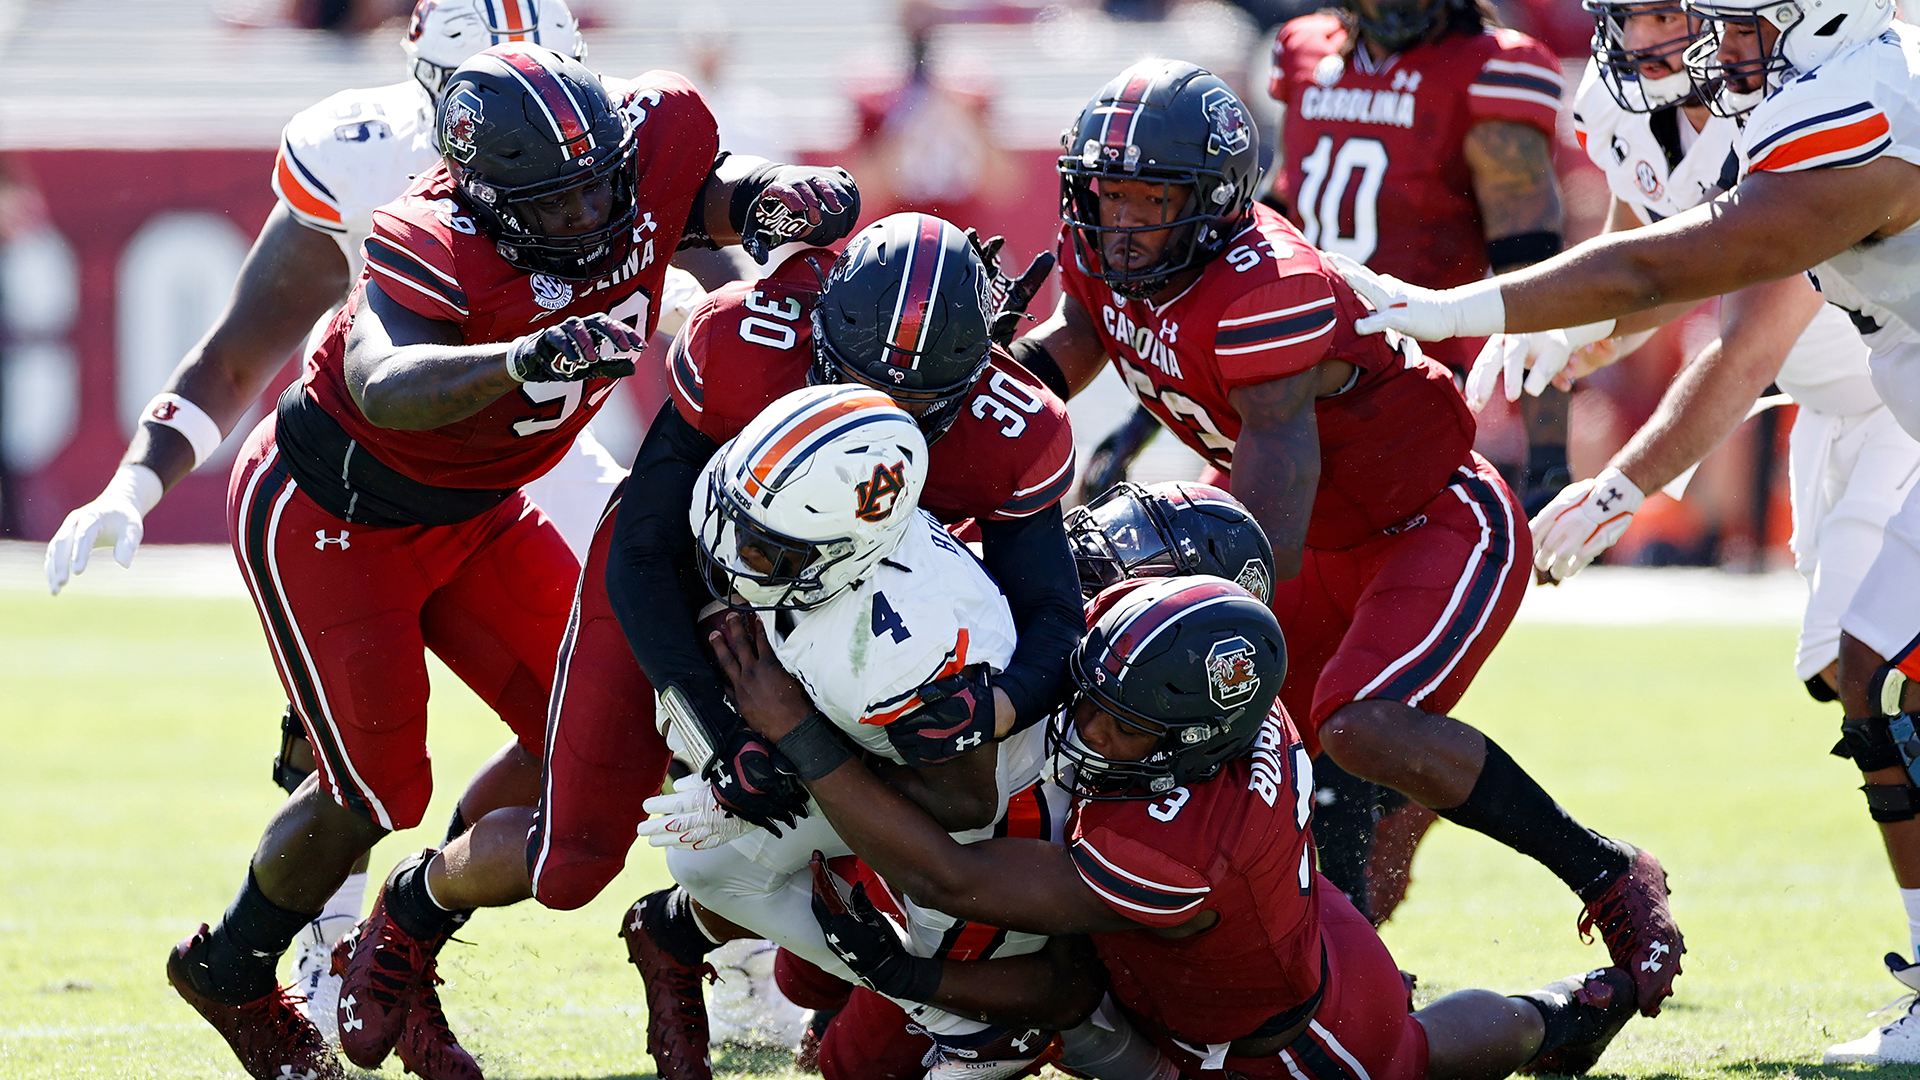 3 things we learned from South Carolina's first win over Auburn since 1933 1